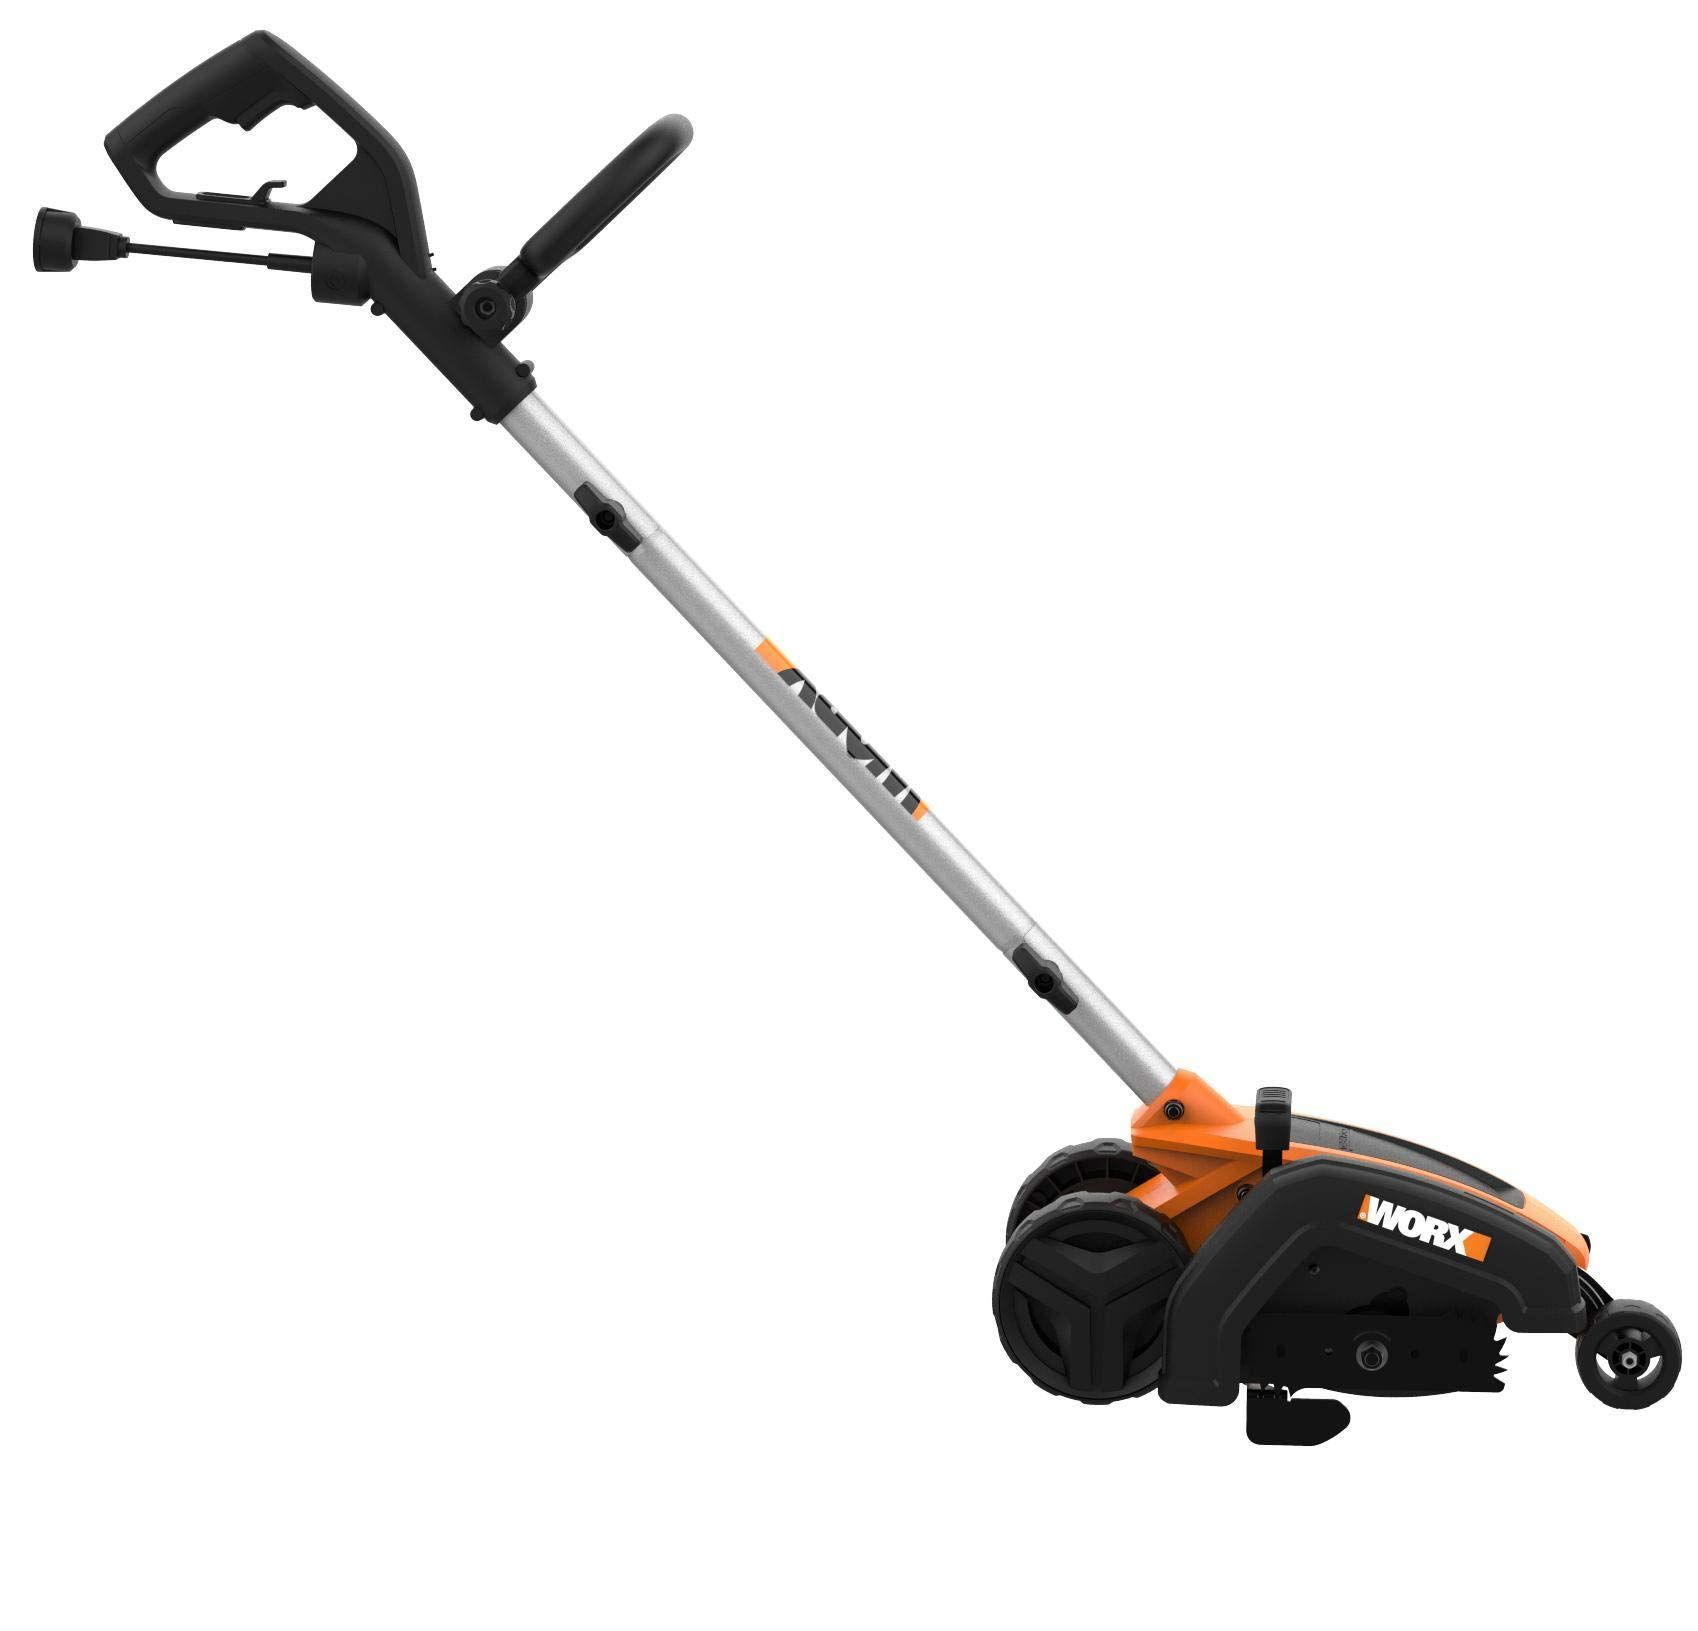 Pin On Mowers Landscaping Tools